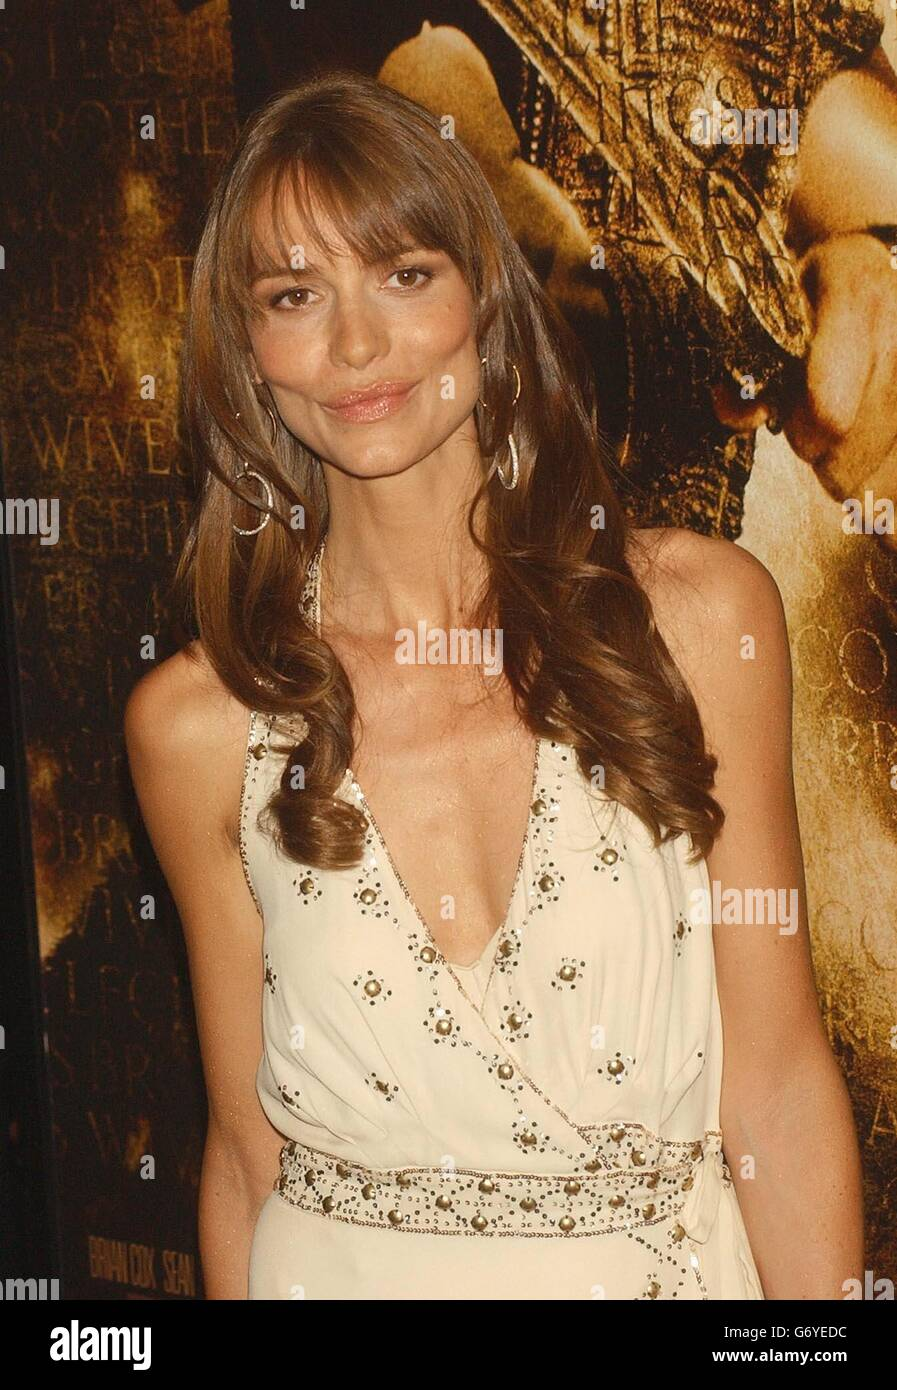 Saffron Burrows naked (91 photo), Sexy, Cleavage, Boobs, lingerie 2015